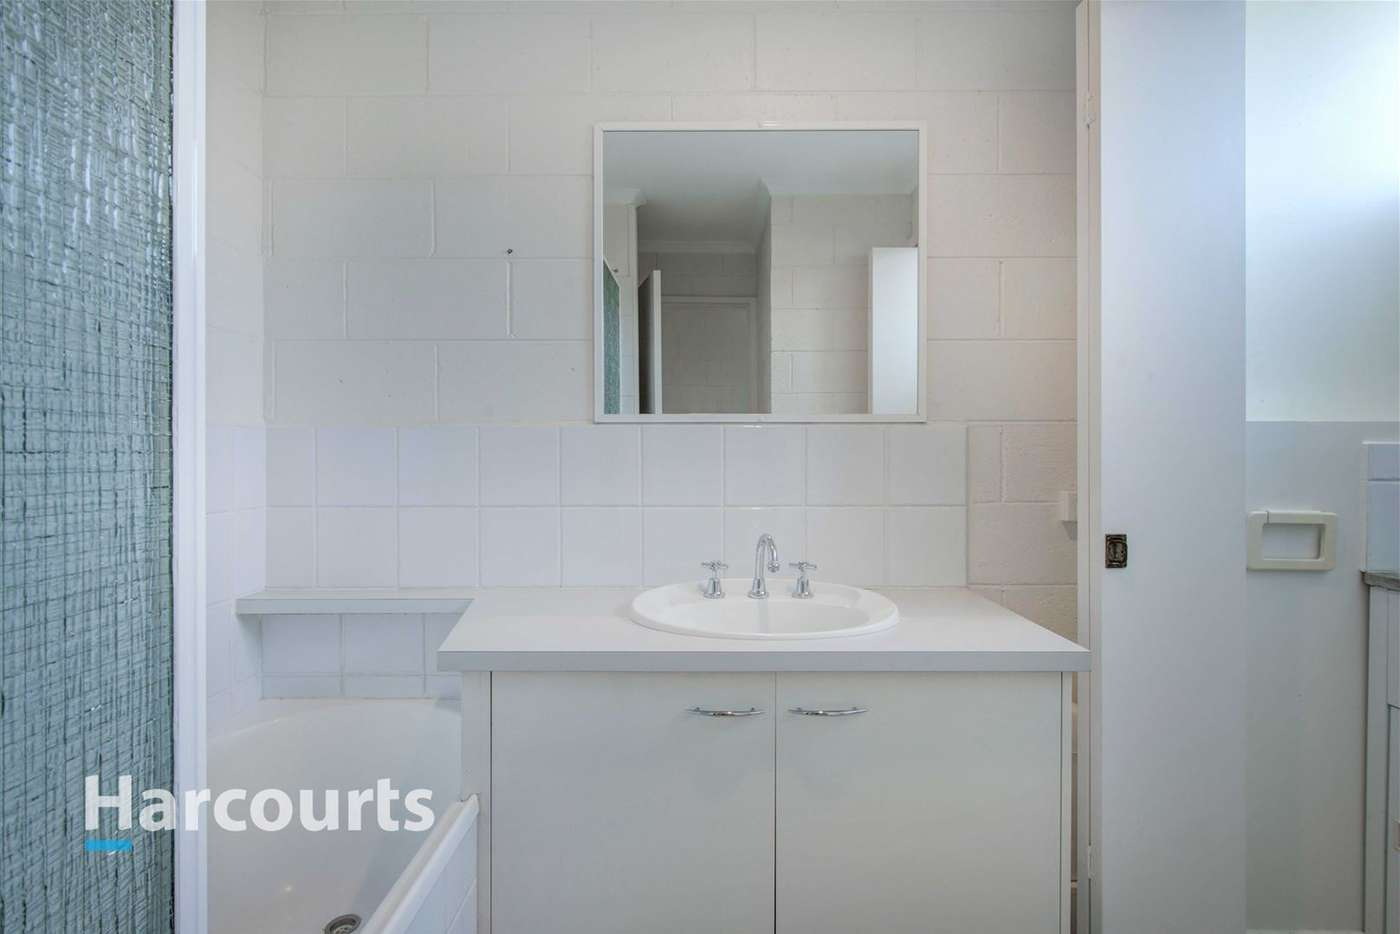 Sixth view of Homely unit listing, 2/7 Gold Court, Hastings VIC 3915